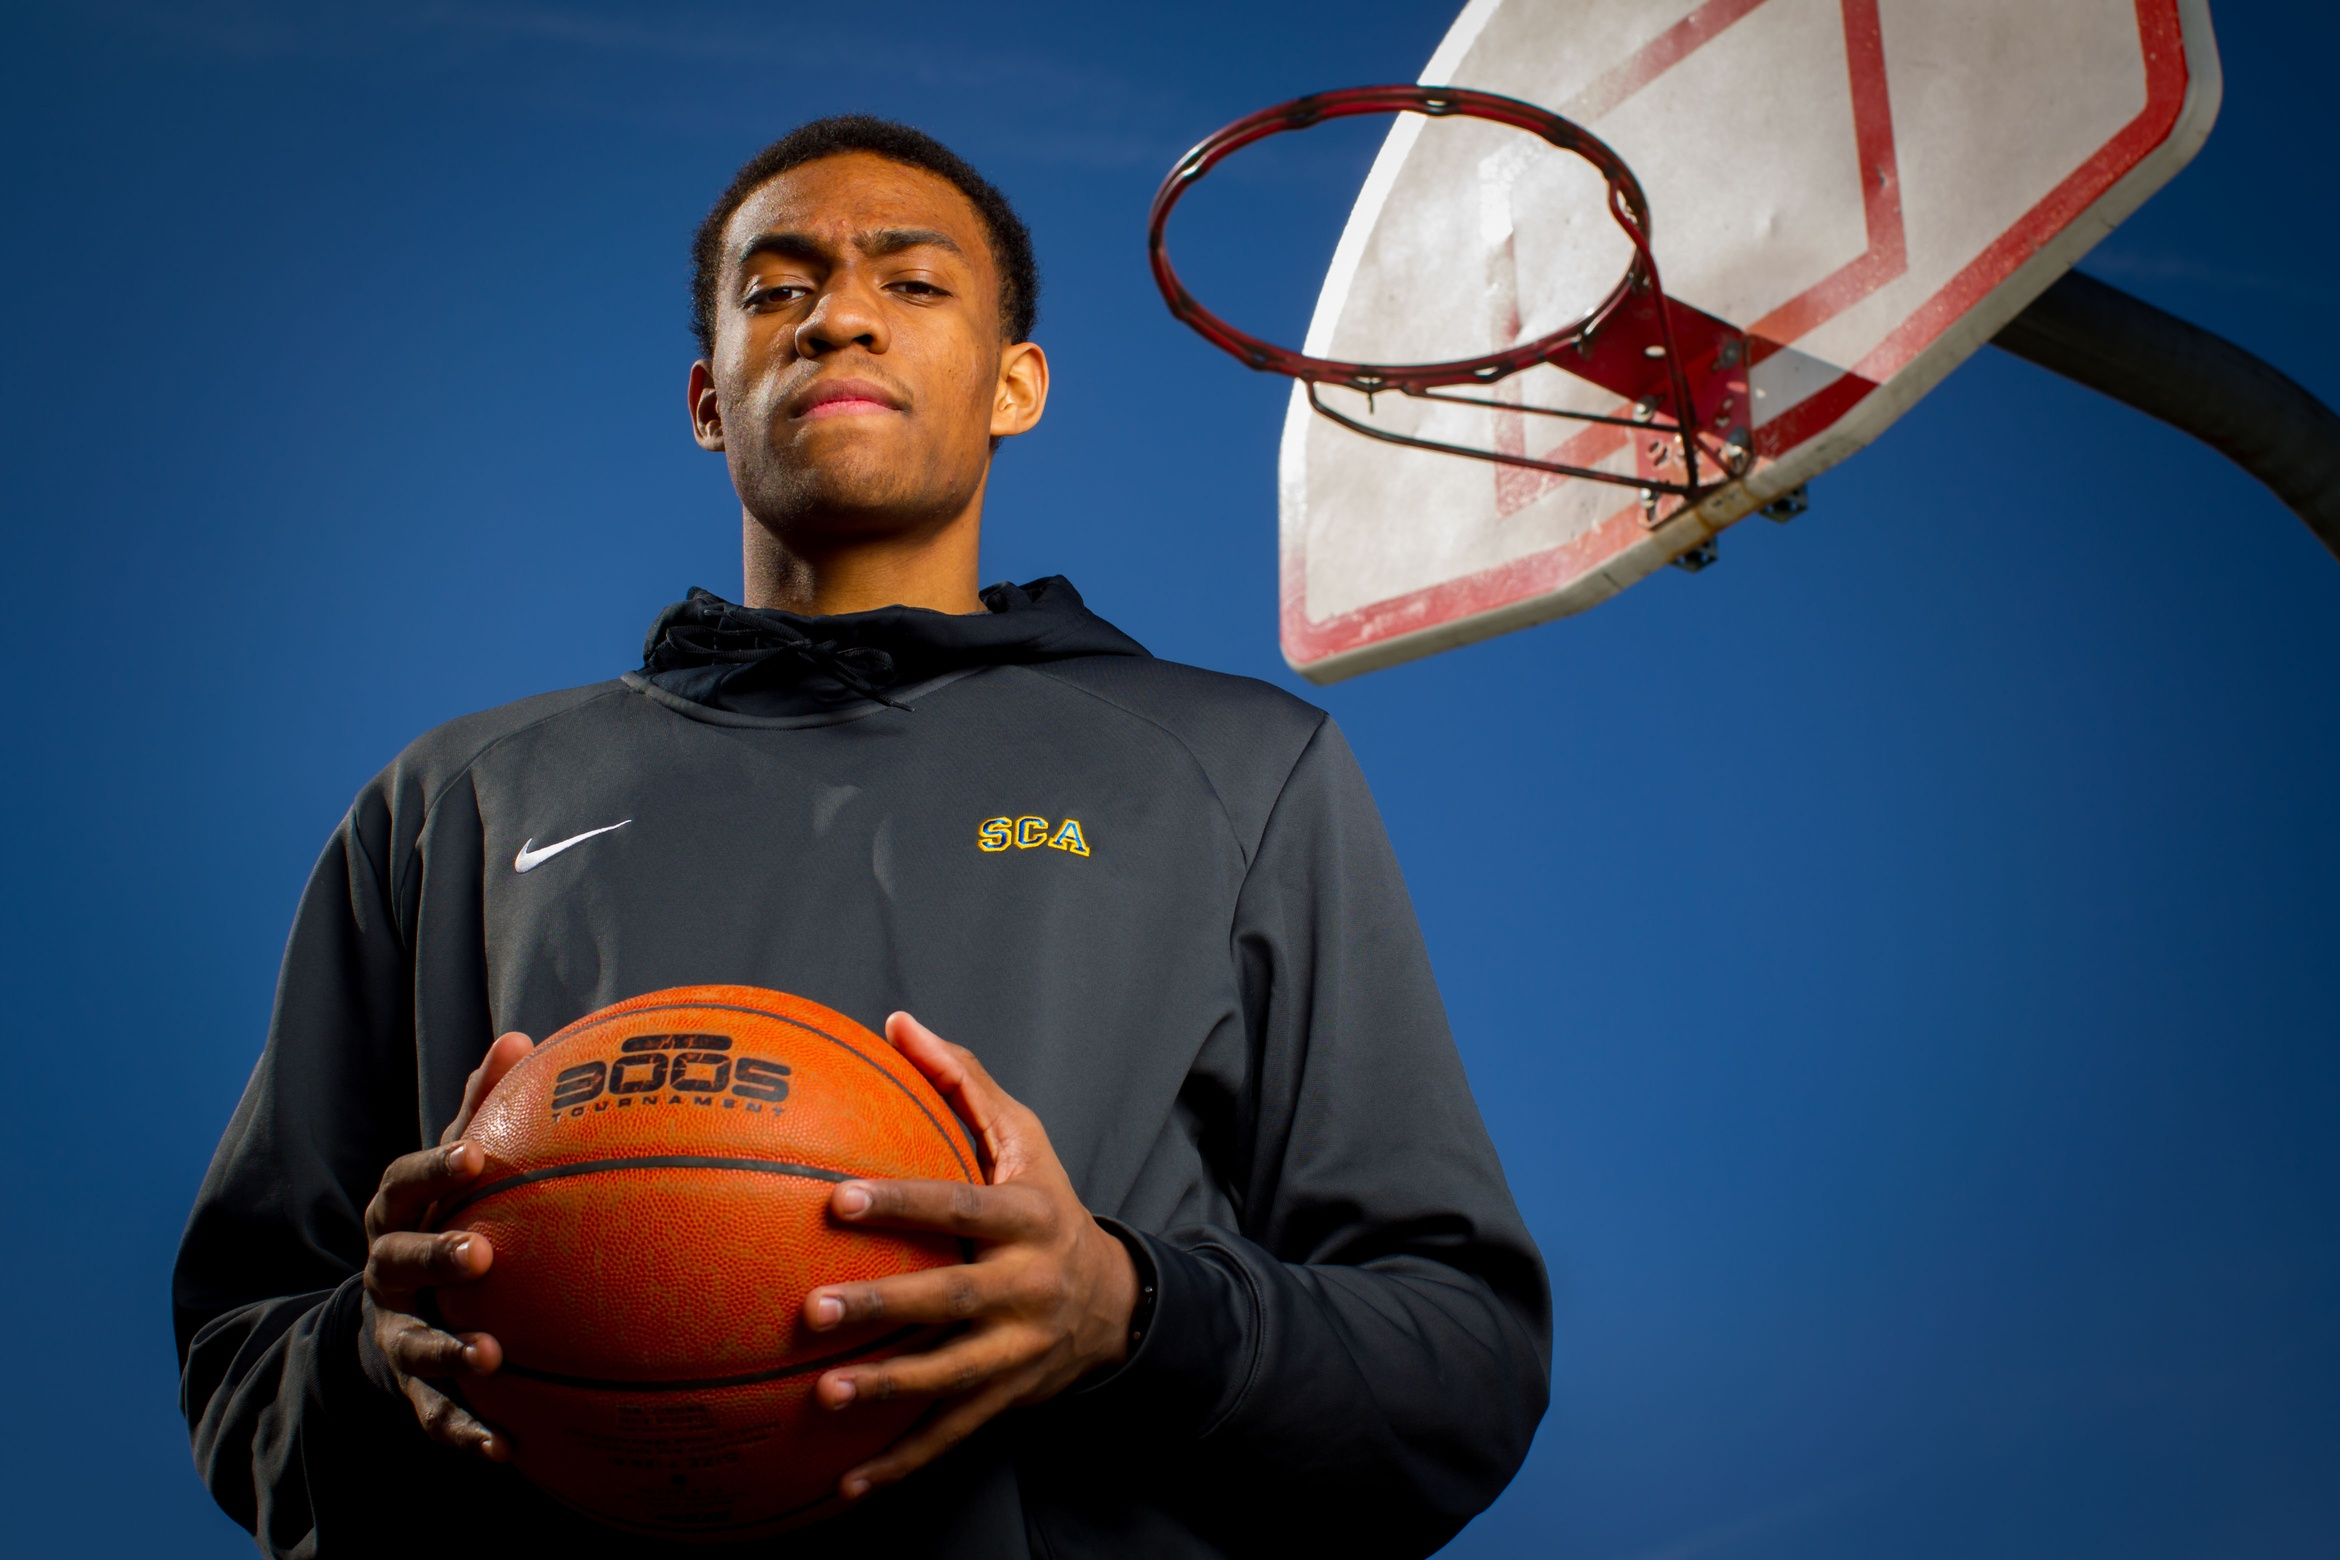 Jabari Parker Shoes It's that time of year when Jabari Parker Shooting Form